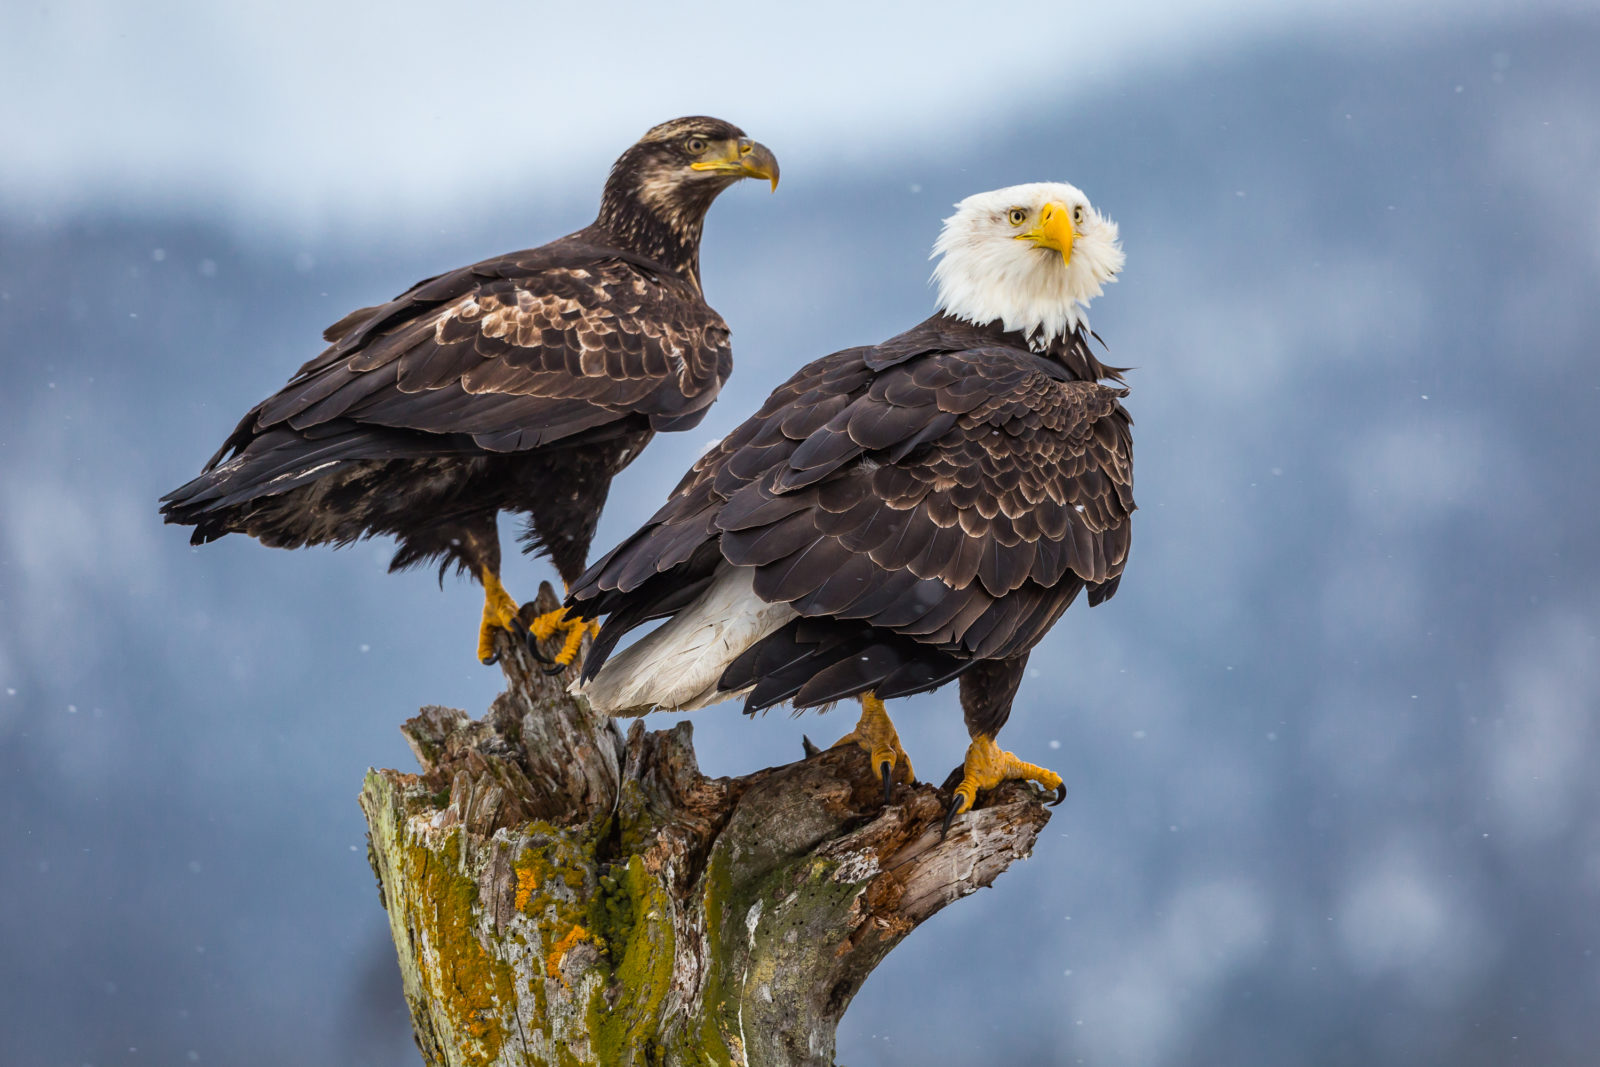 Adult Bald eagle with juvenile